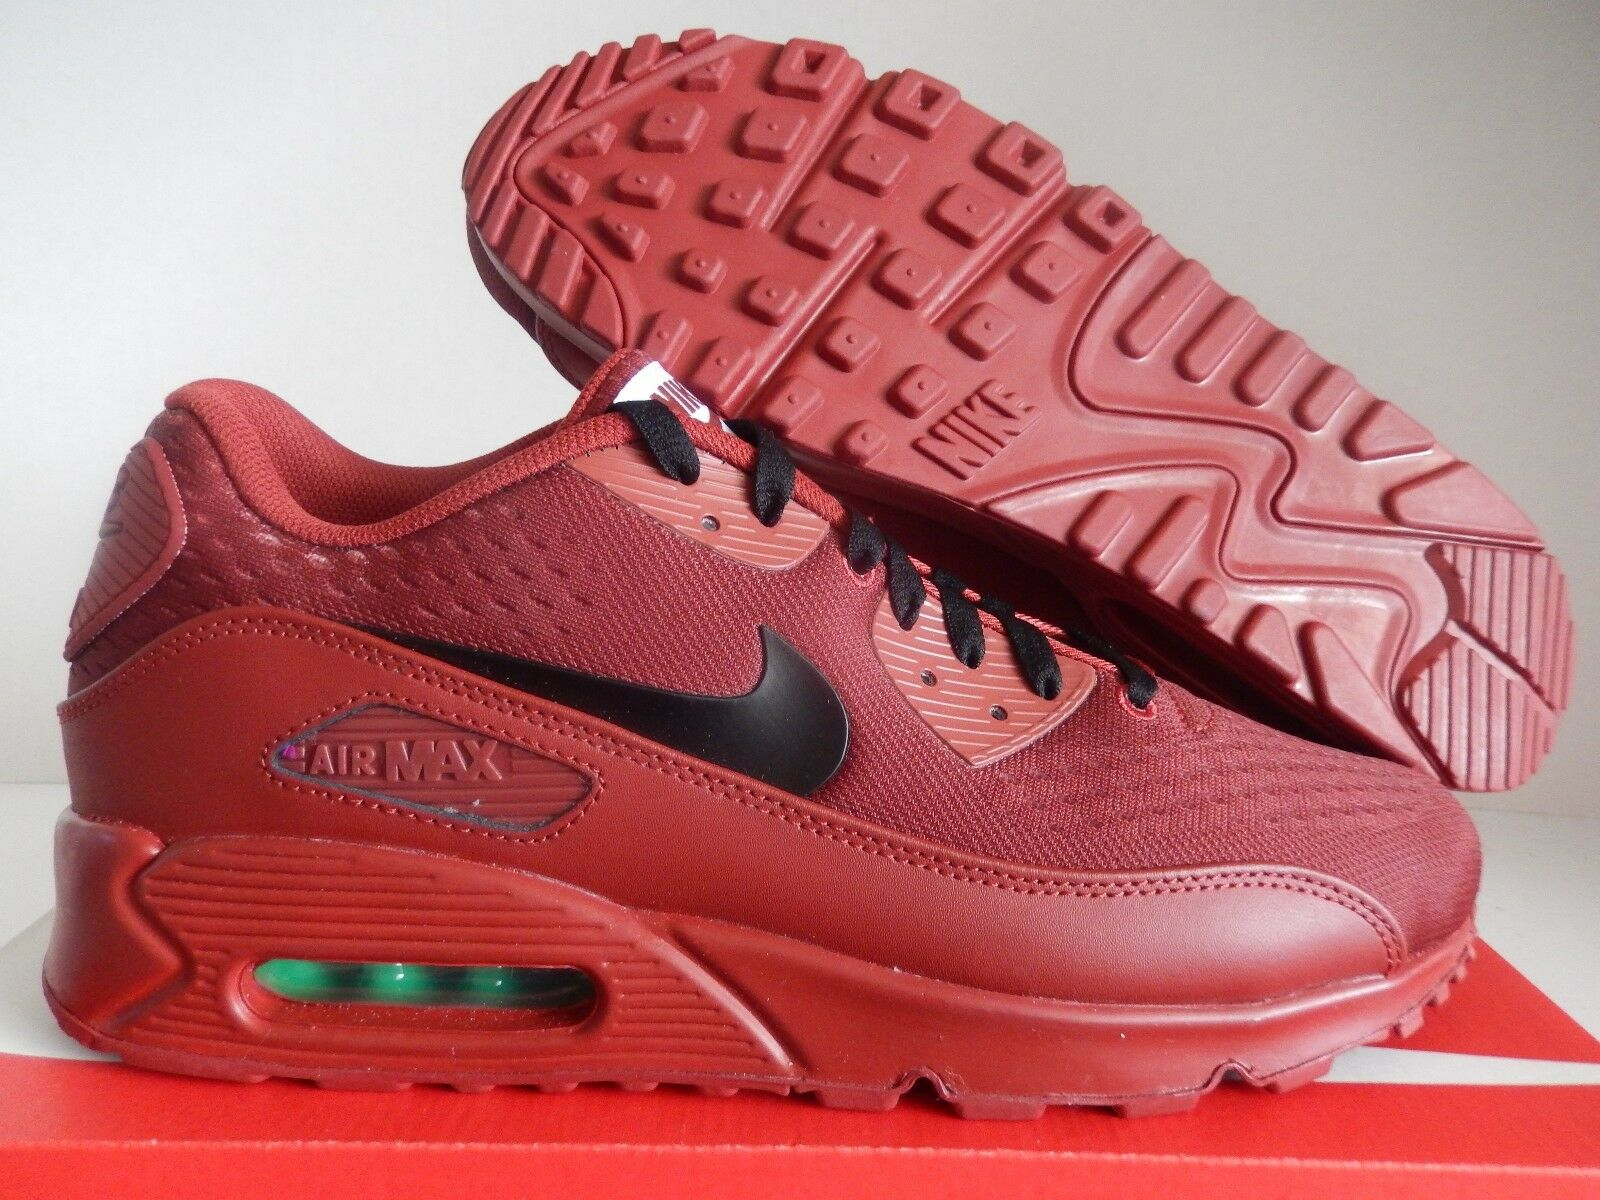 nike air max max max 90 id granite-brickhouse sz 10,5 ad76ee